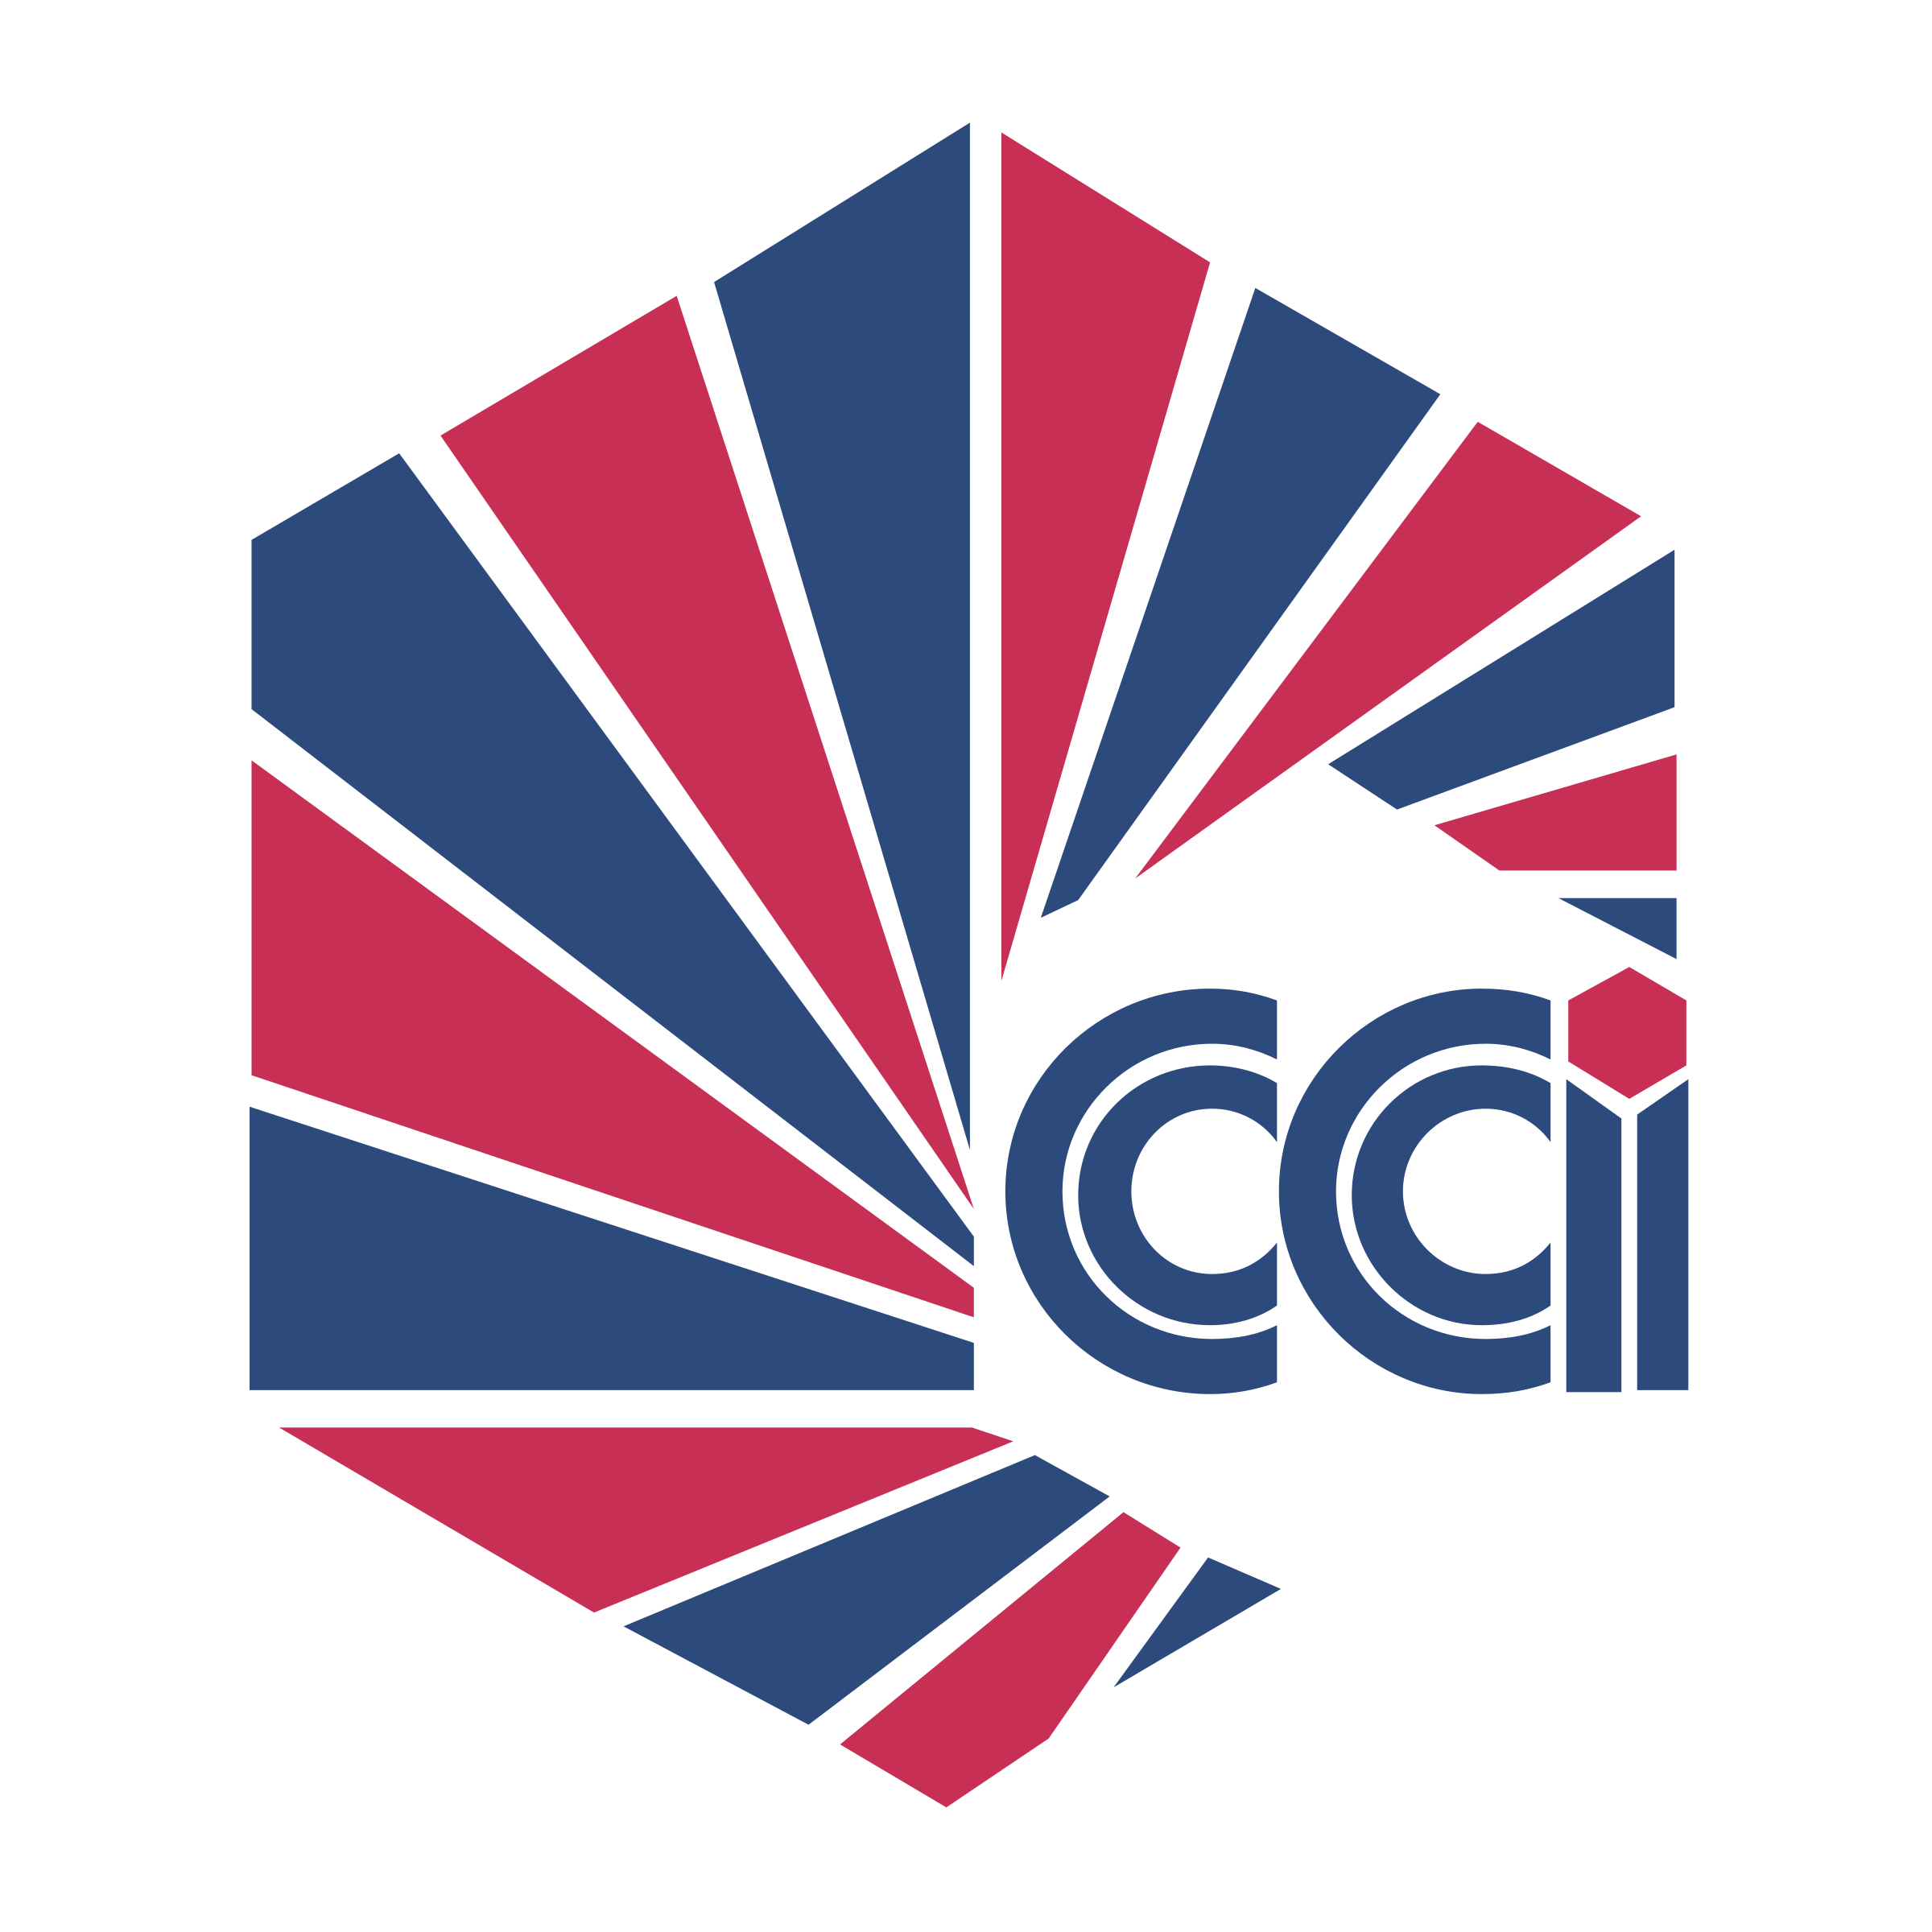 CCI Logo PNG Transparent & SVG Vector.